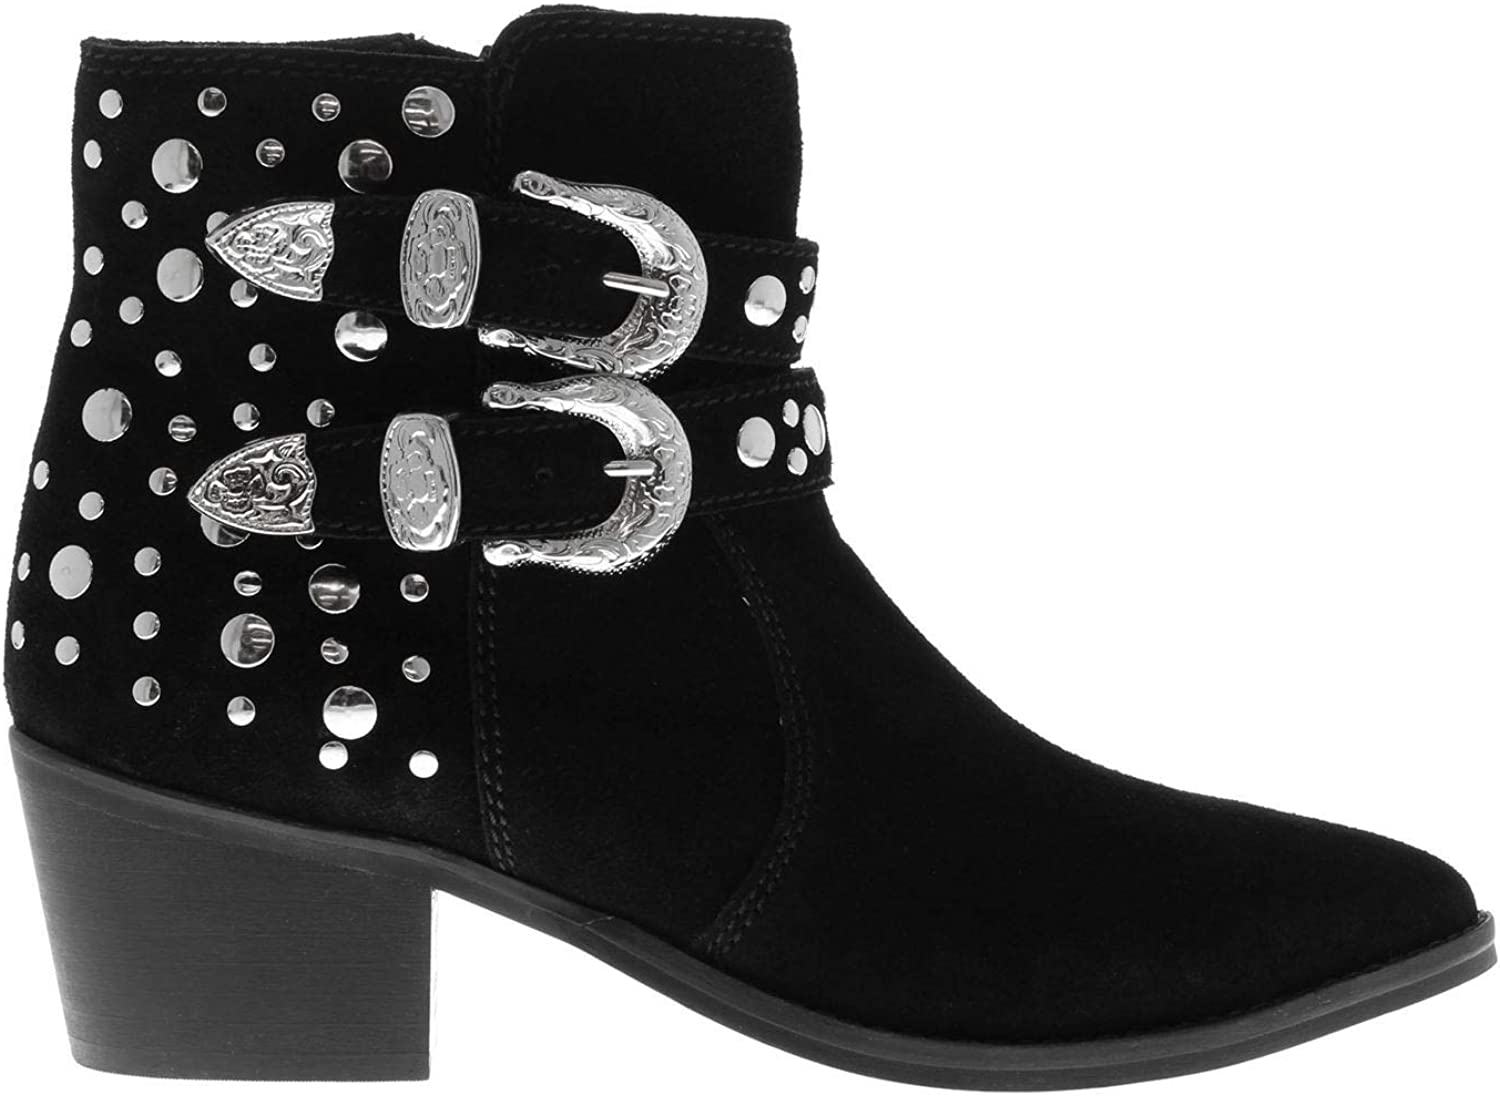 Attribute Irma Studded Suede Ankle Boots Footwear shoes